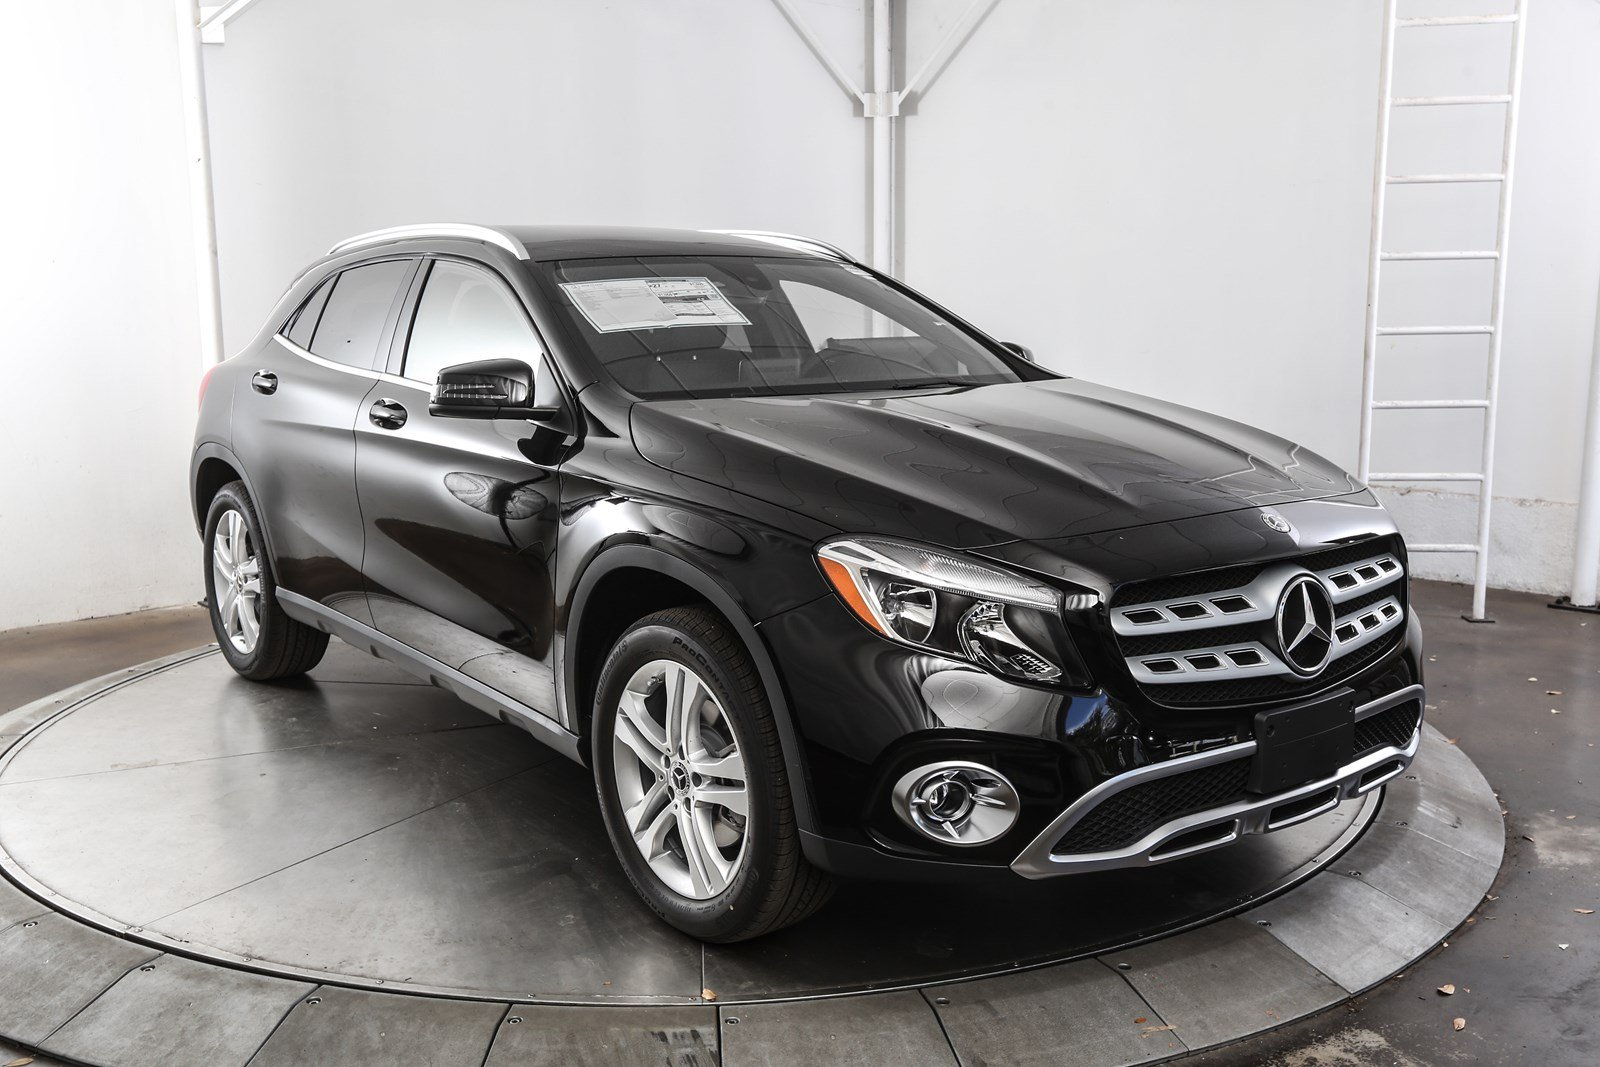 new 2018 mercedes benz gla gla 250 suv in austin m57775. Black Bedroom Furniture Sets. Home Design Ideas